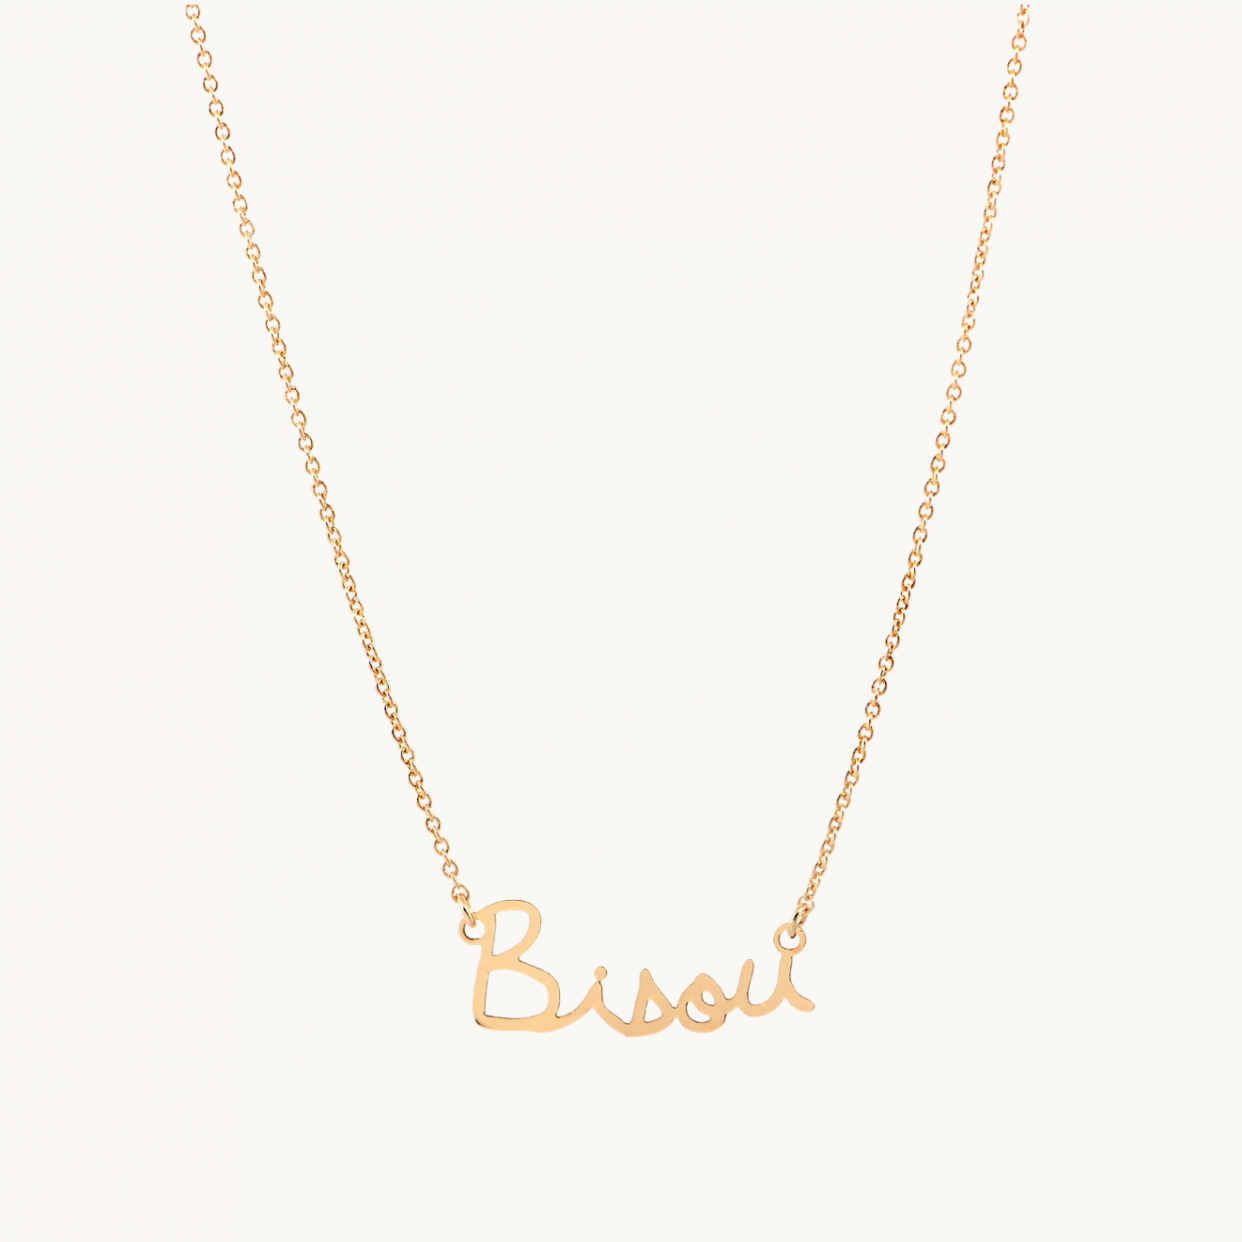 French Face Bisou Necklace